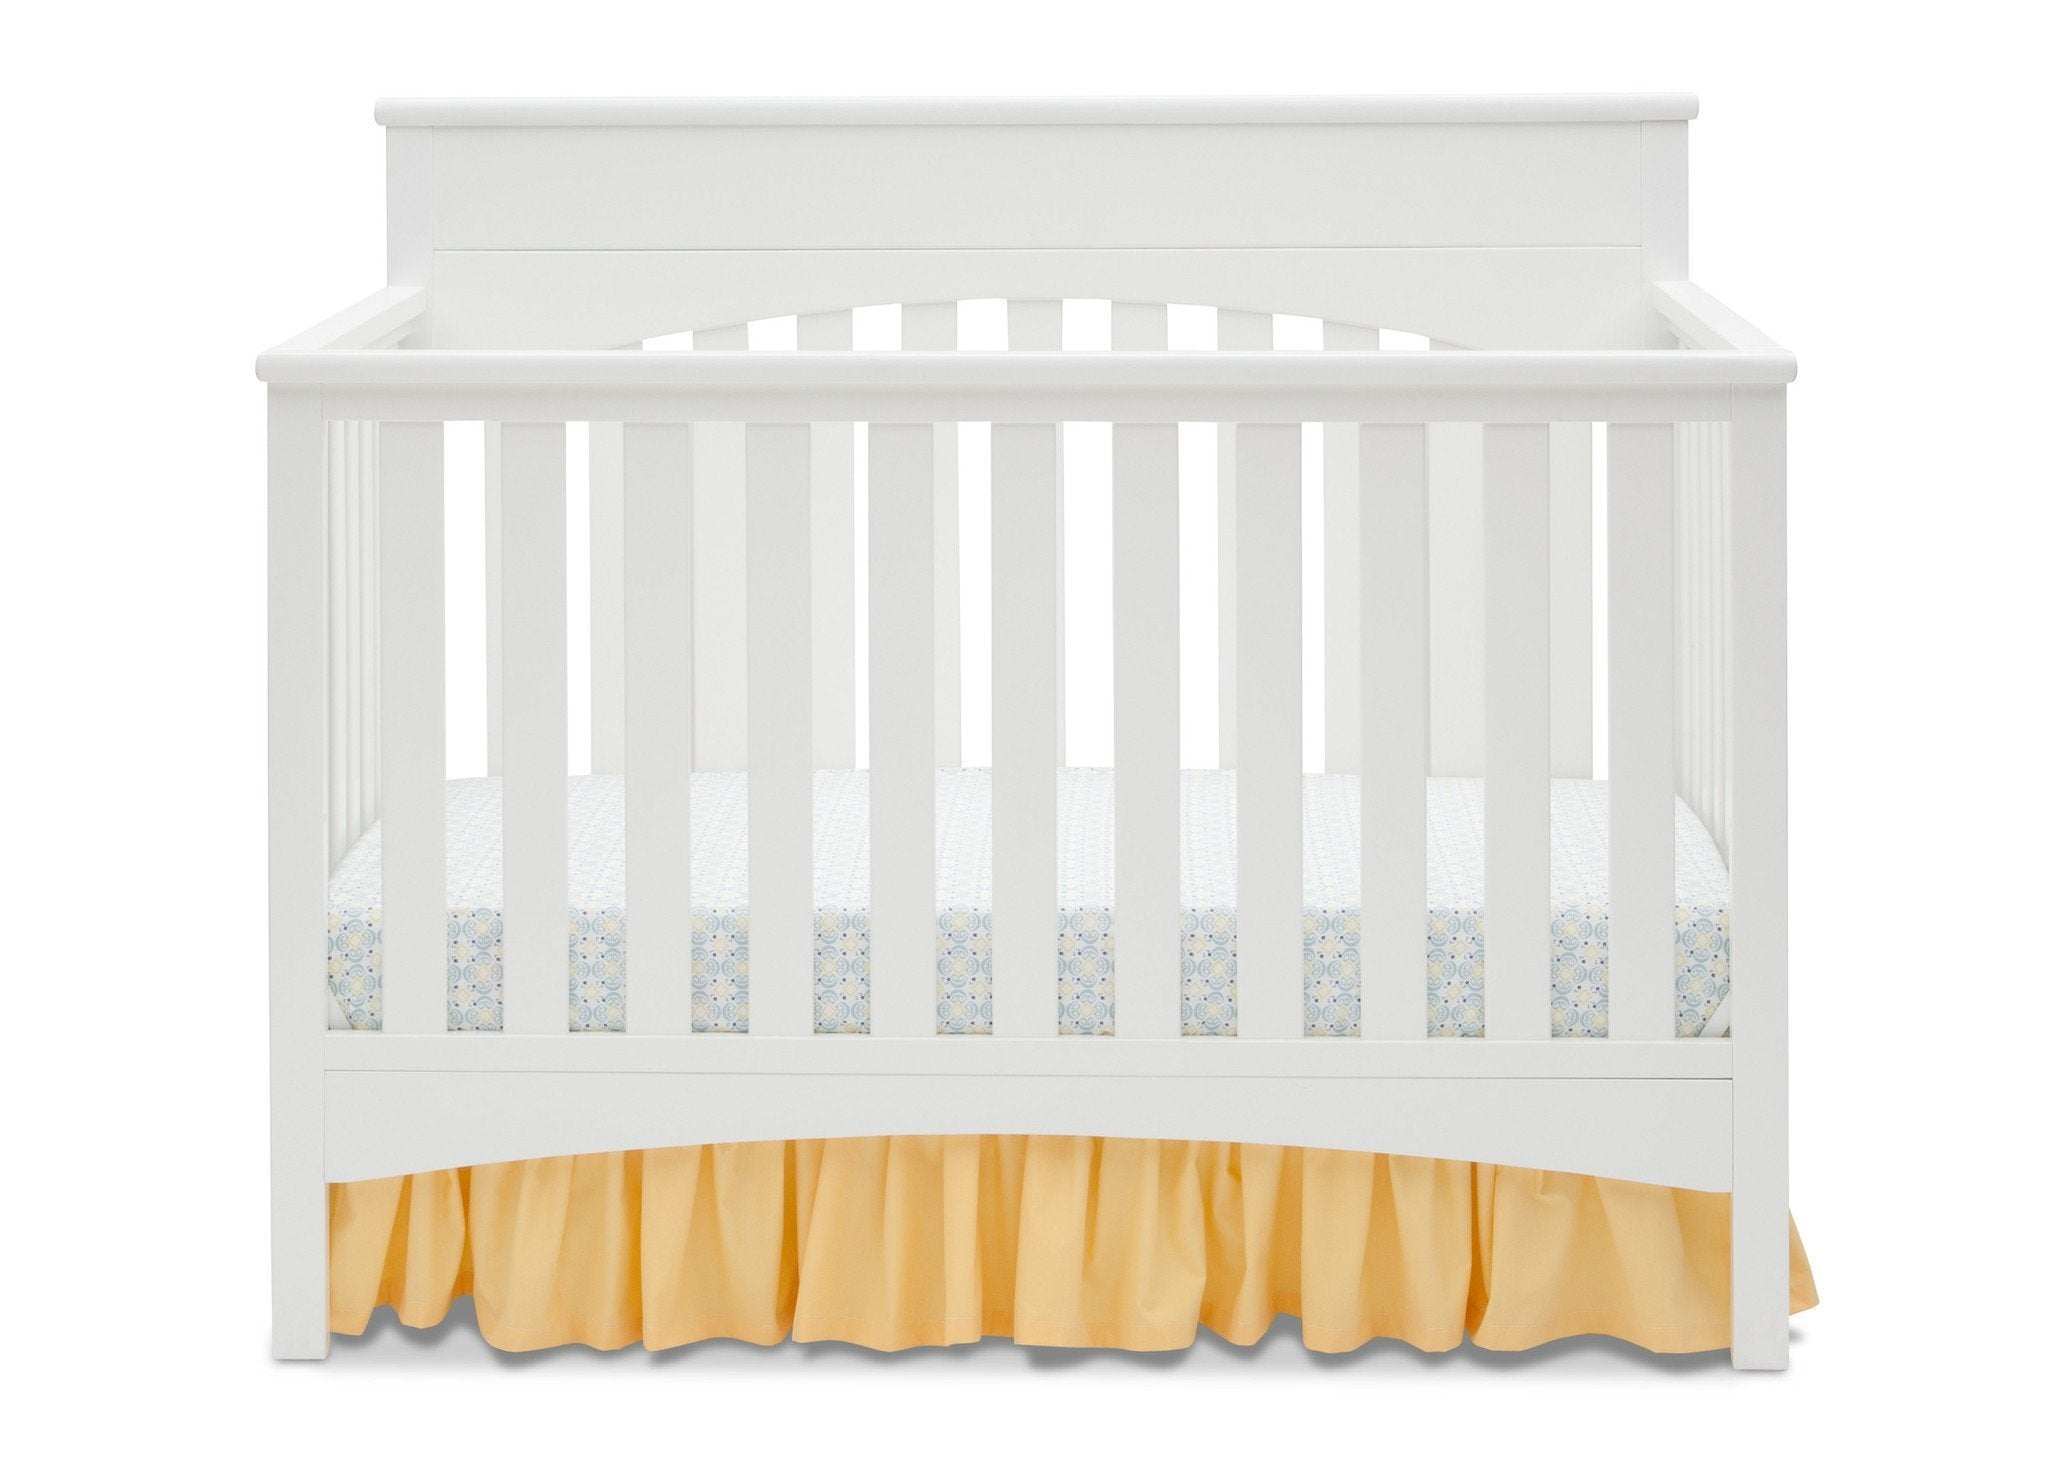 Delta Children White Ambiance (108) Bennington Lifestyle 4-in-1 Crib, Crib Conversion Front View a2a